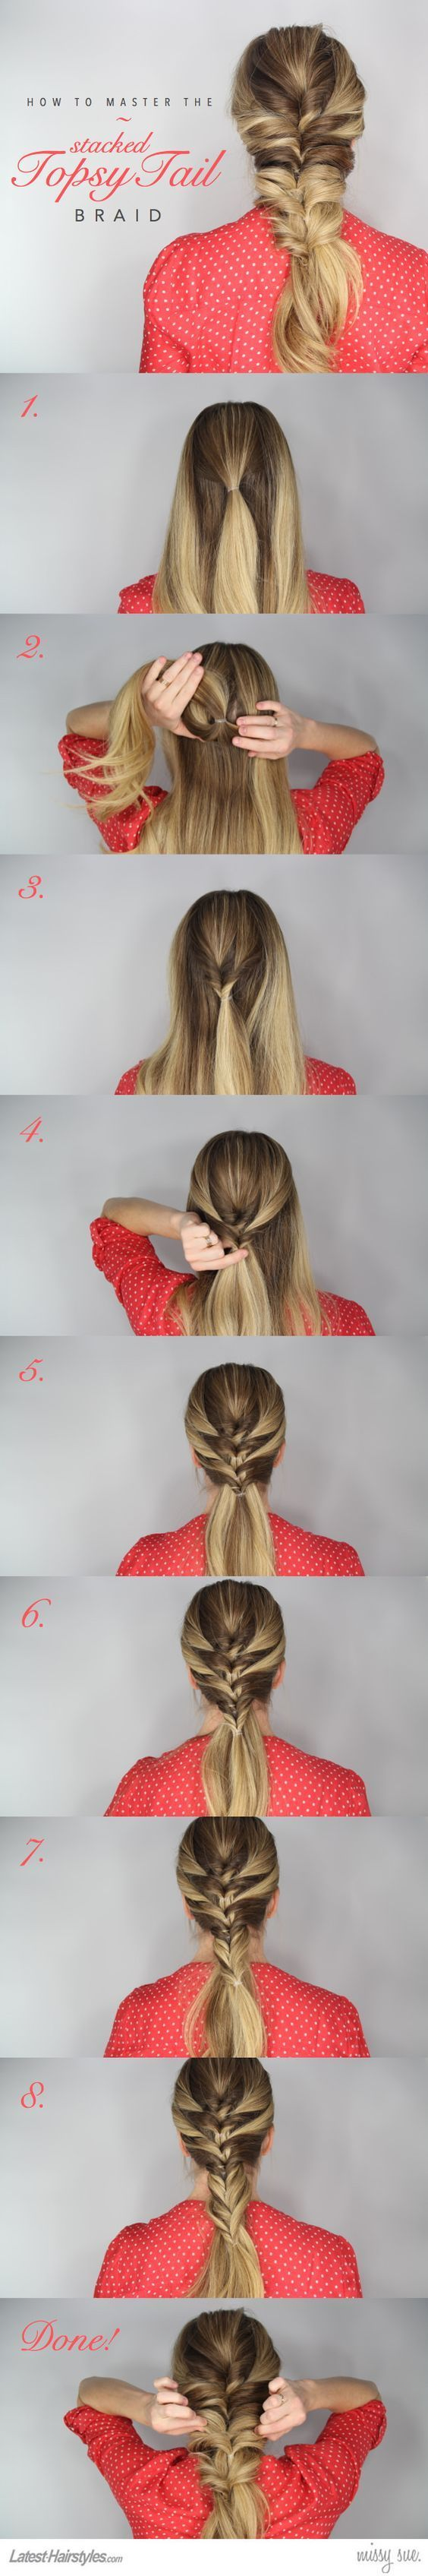 Diy hairstyle braided hairstyle tutorials peinados fáciles